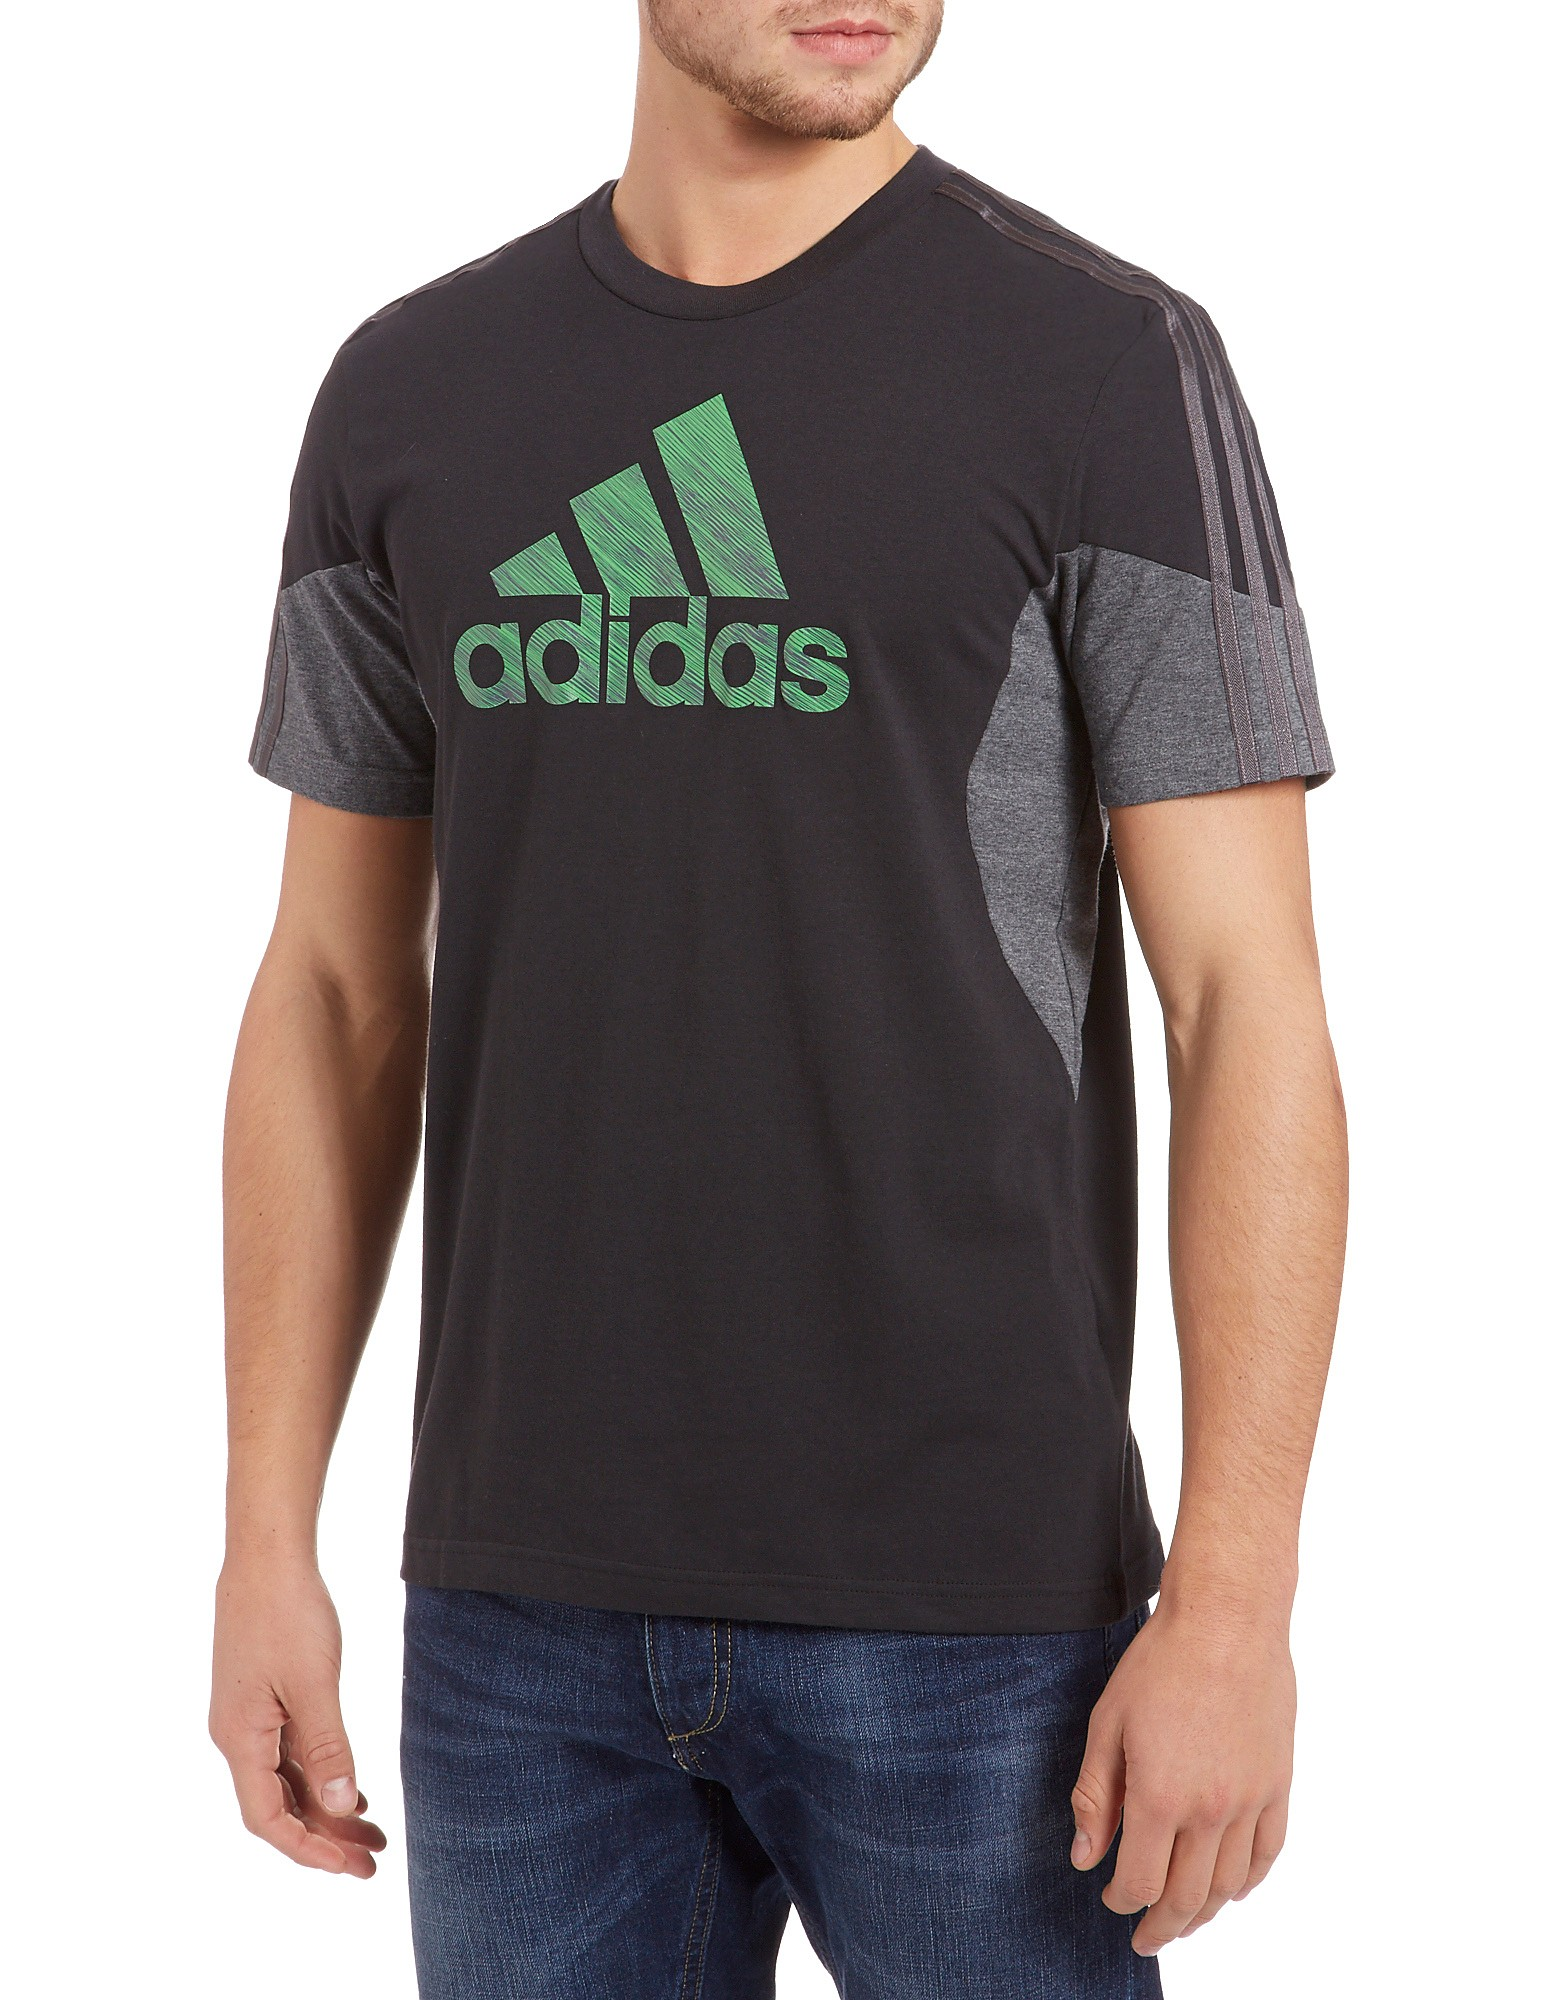 Adidas Destruct Logo T-Shirt product image